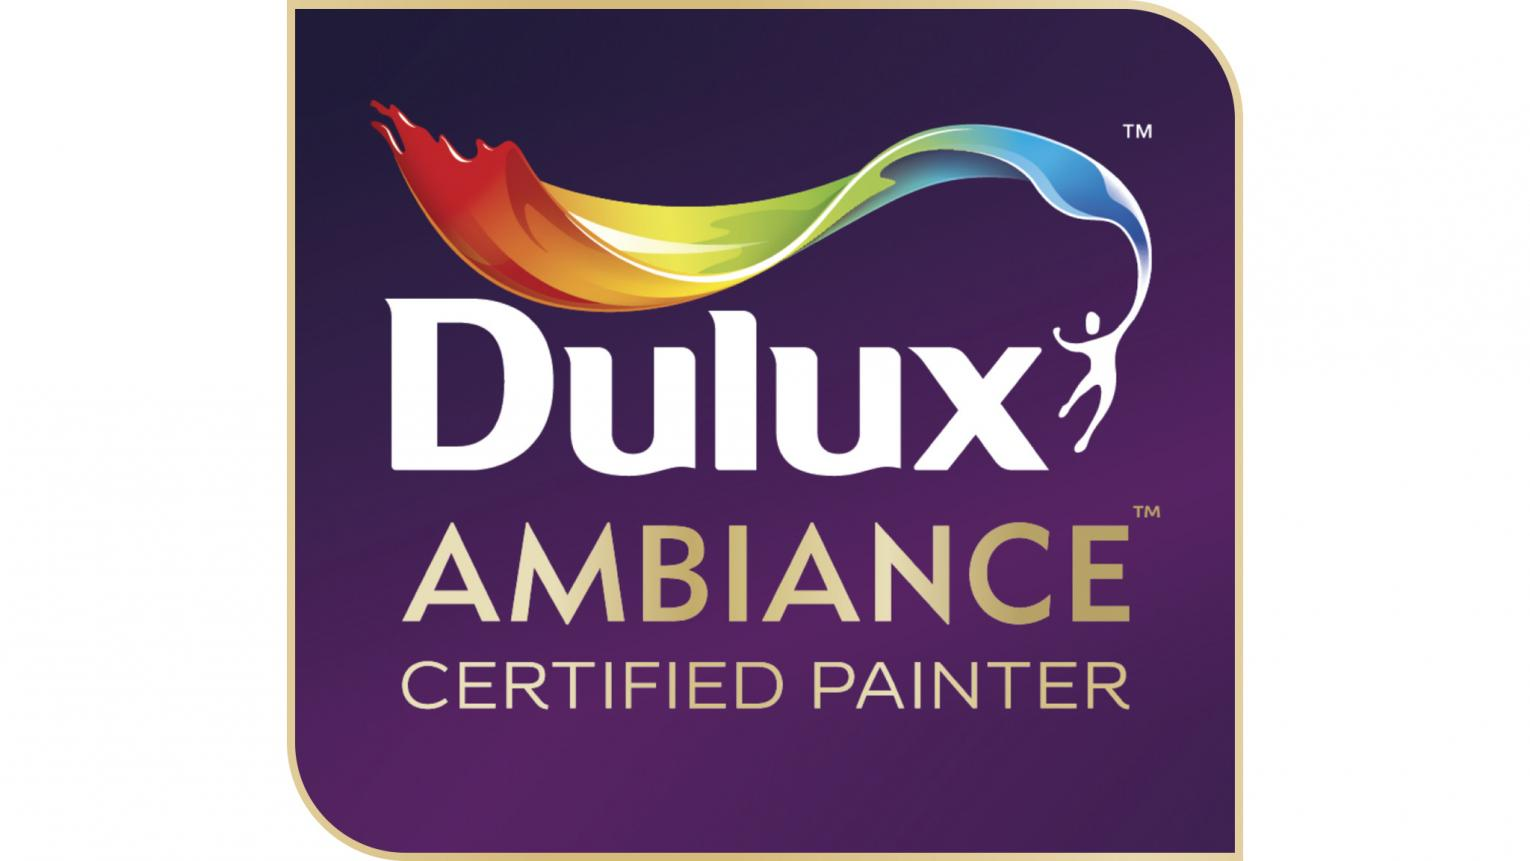 Ambiance - Certified Painter